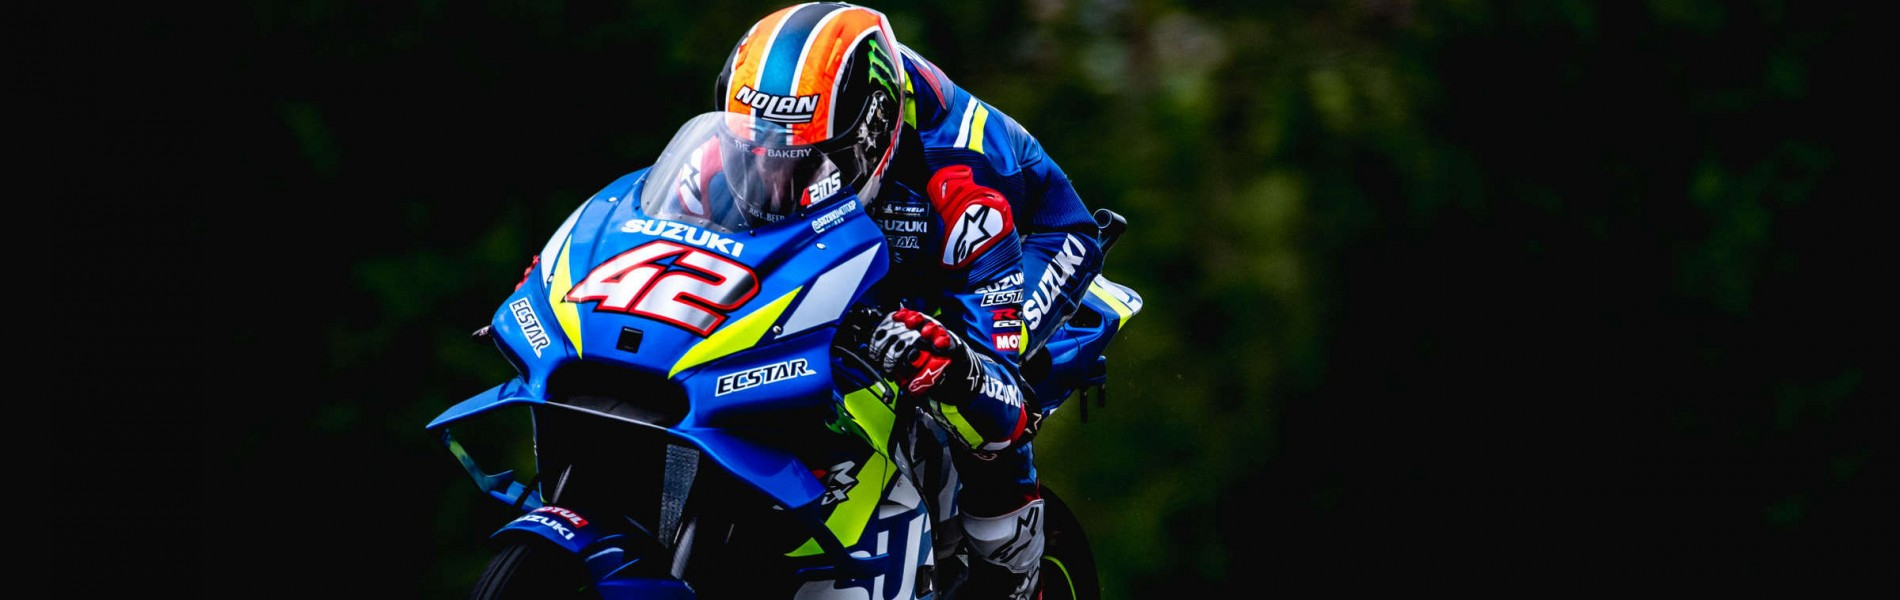 Shots from qualifiers MotoGP brno